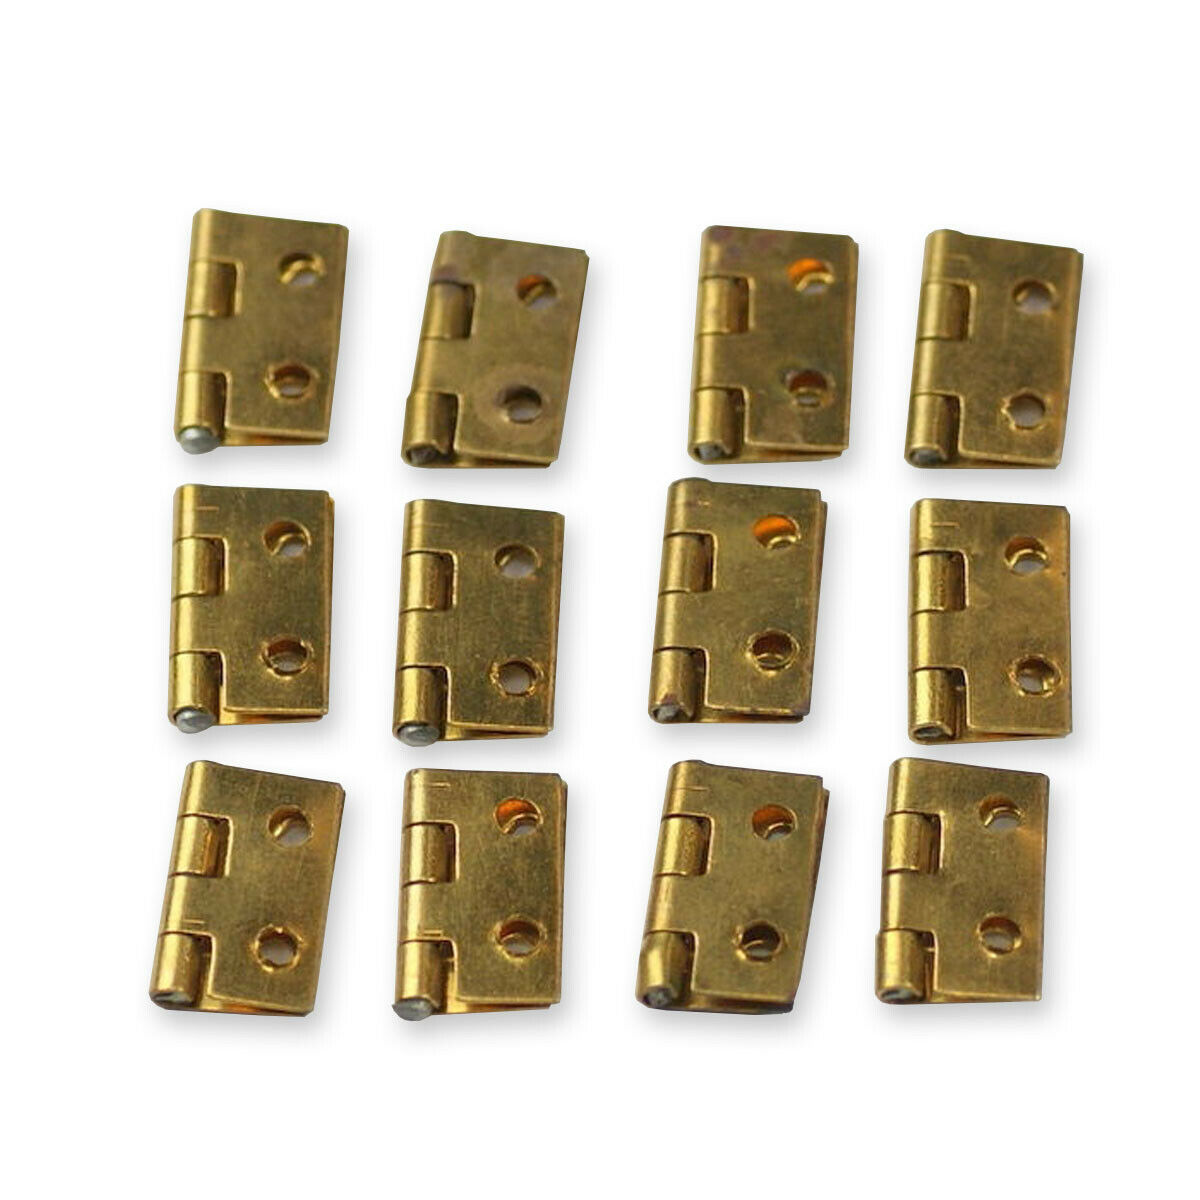 12x Small BRASS HINGES clock case repairs parts clockmakers + other uses